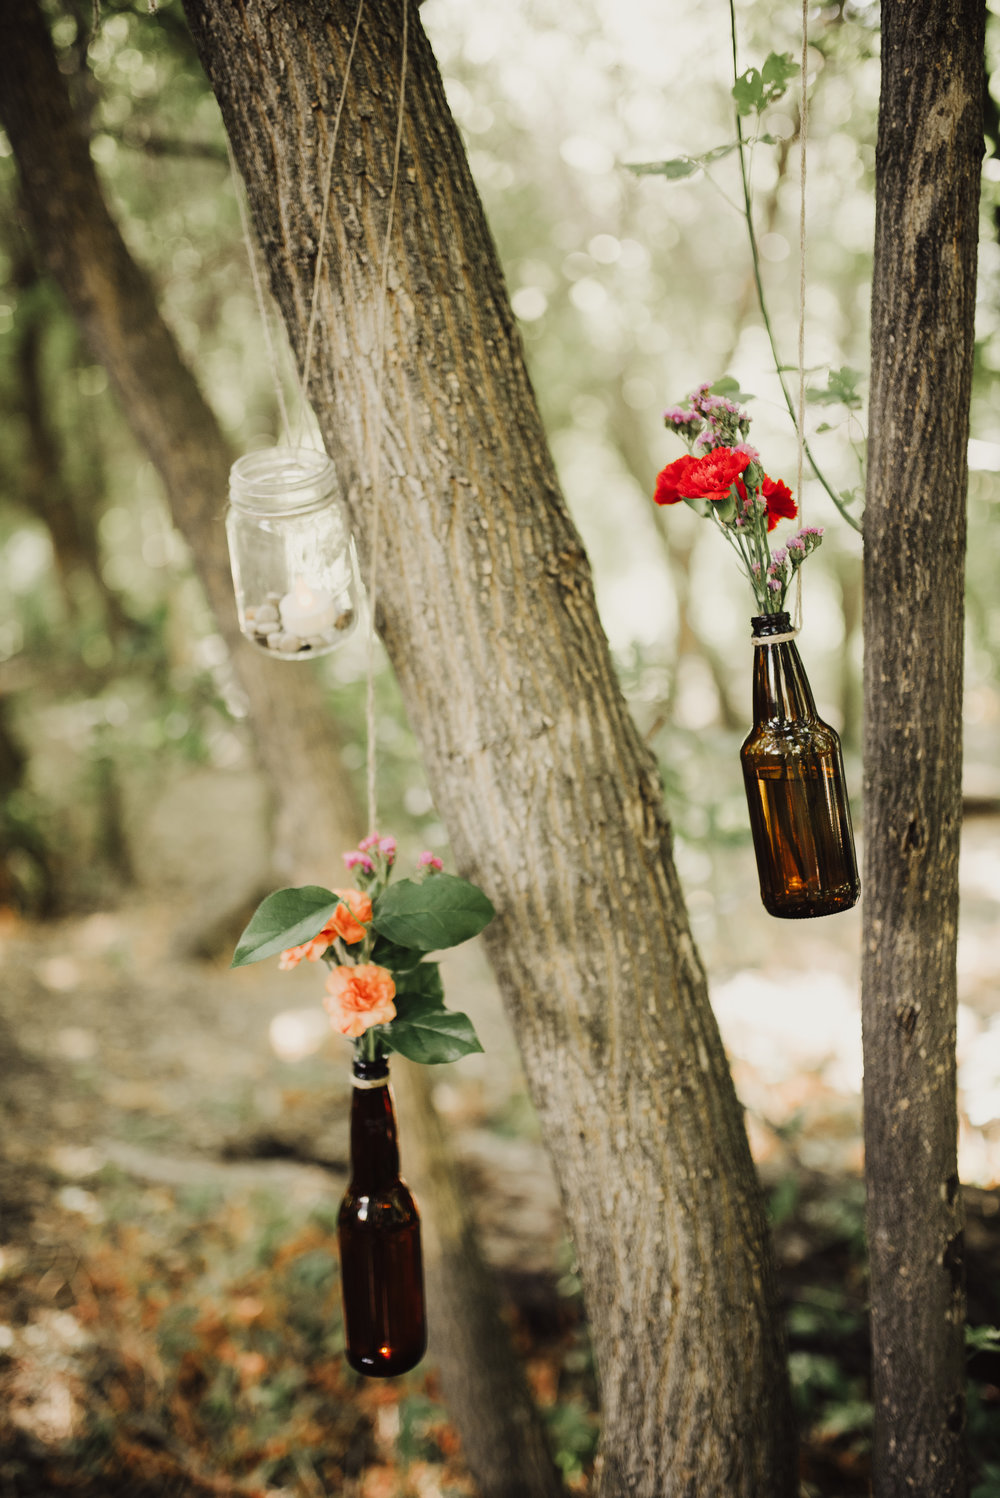 wildflowers-in-jars-hanging-from-forest-trees.jpg